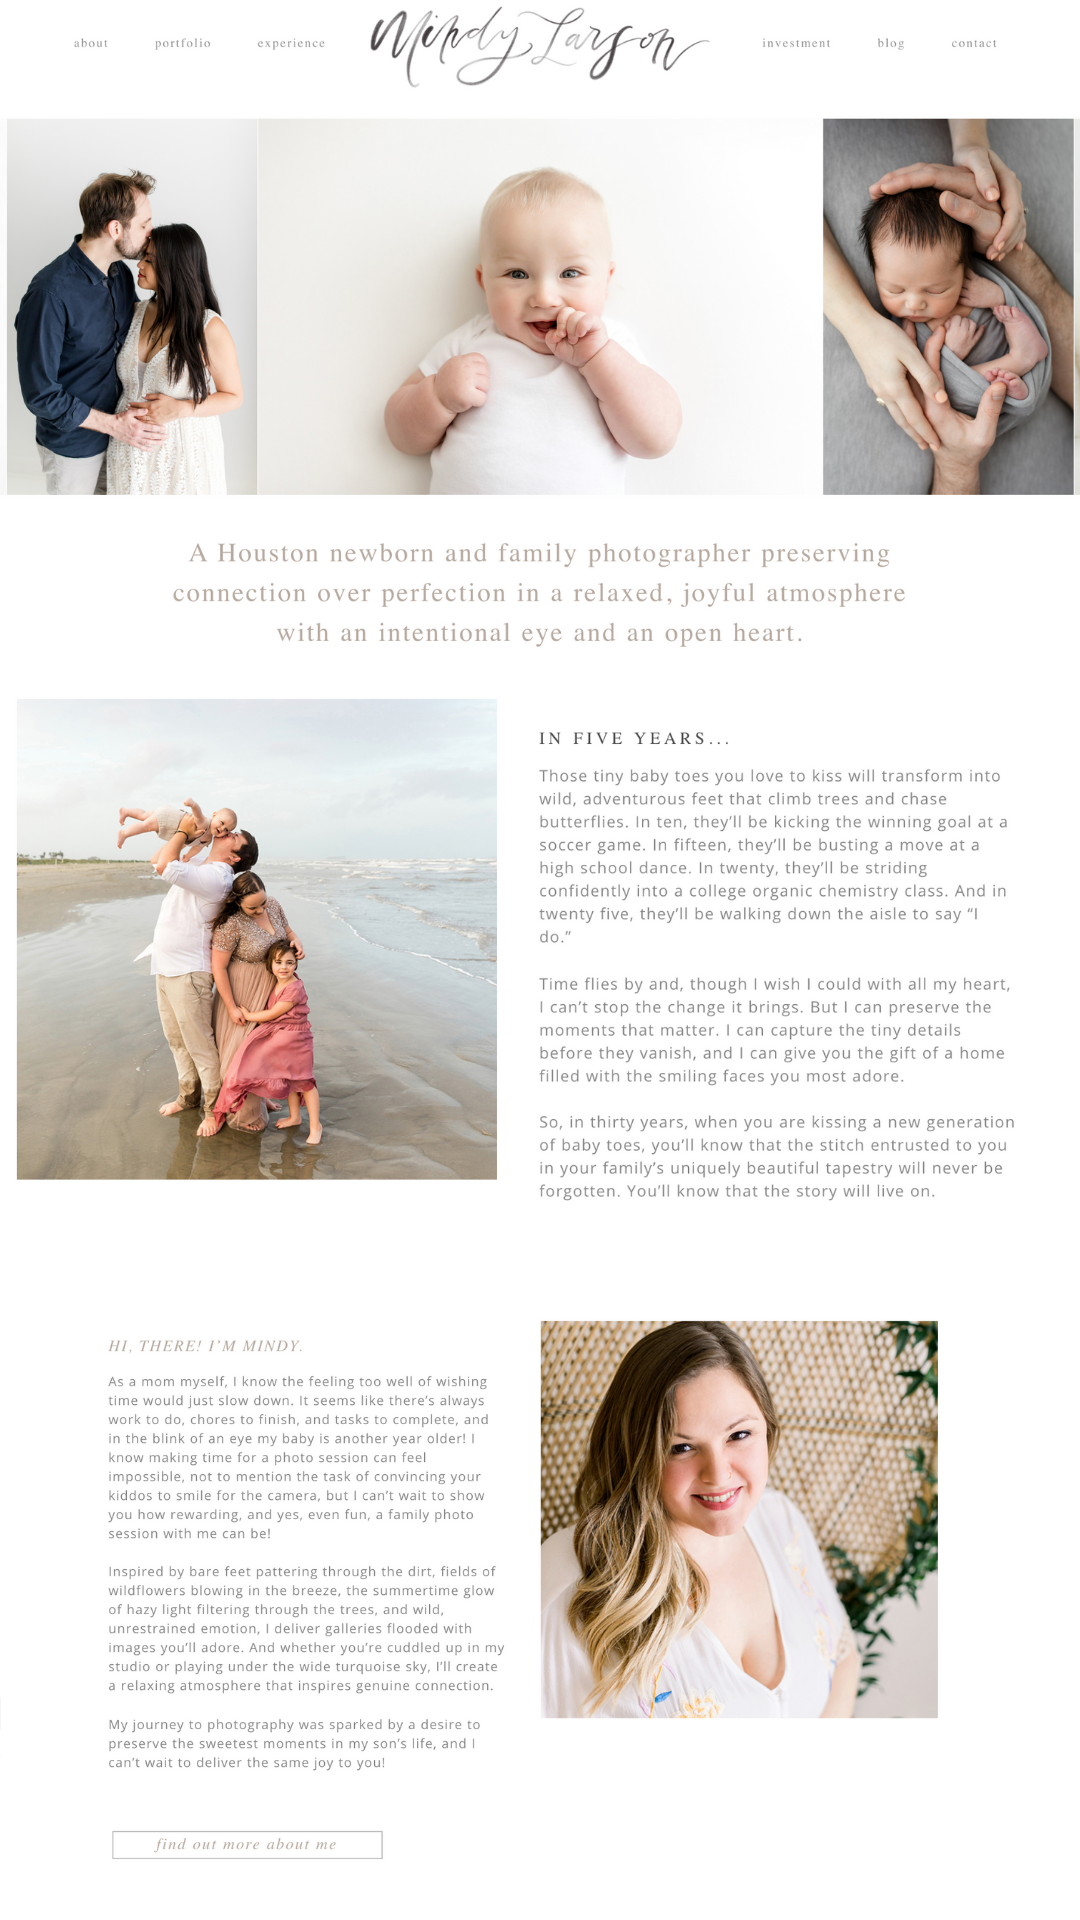 Mindy Larson Photography copywriting for photographers client of The Write Lens